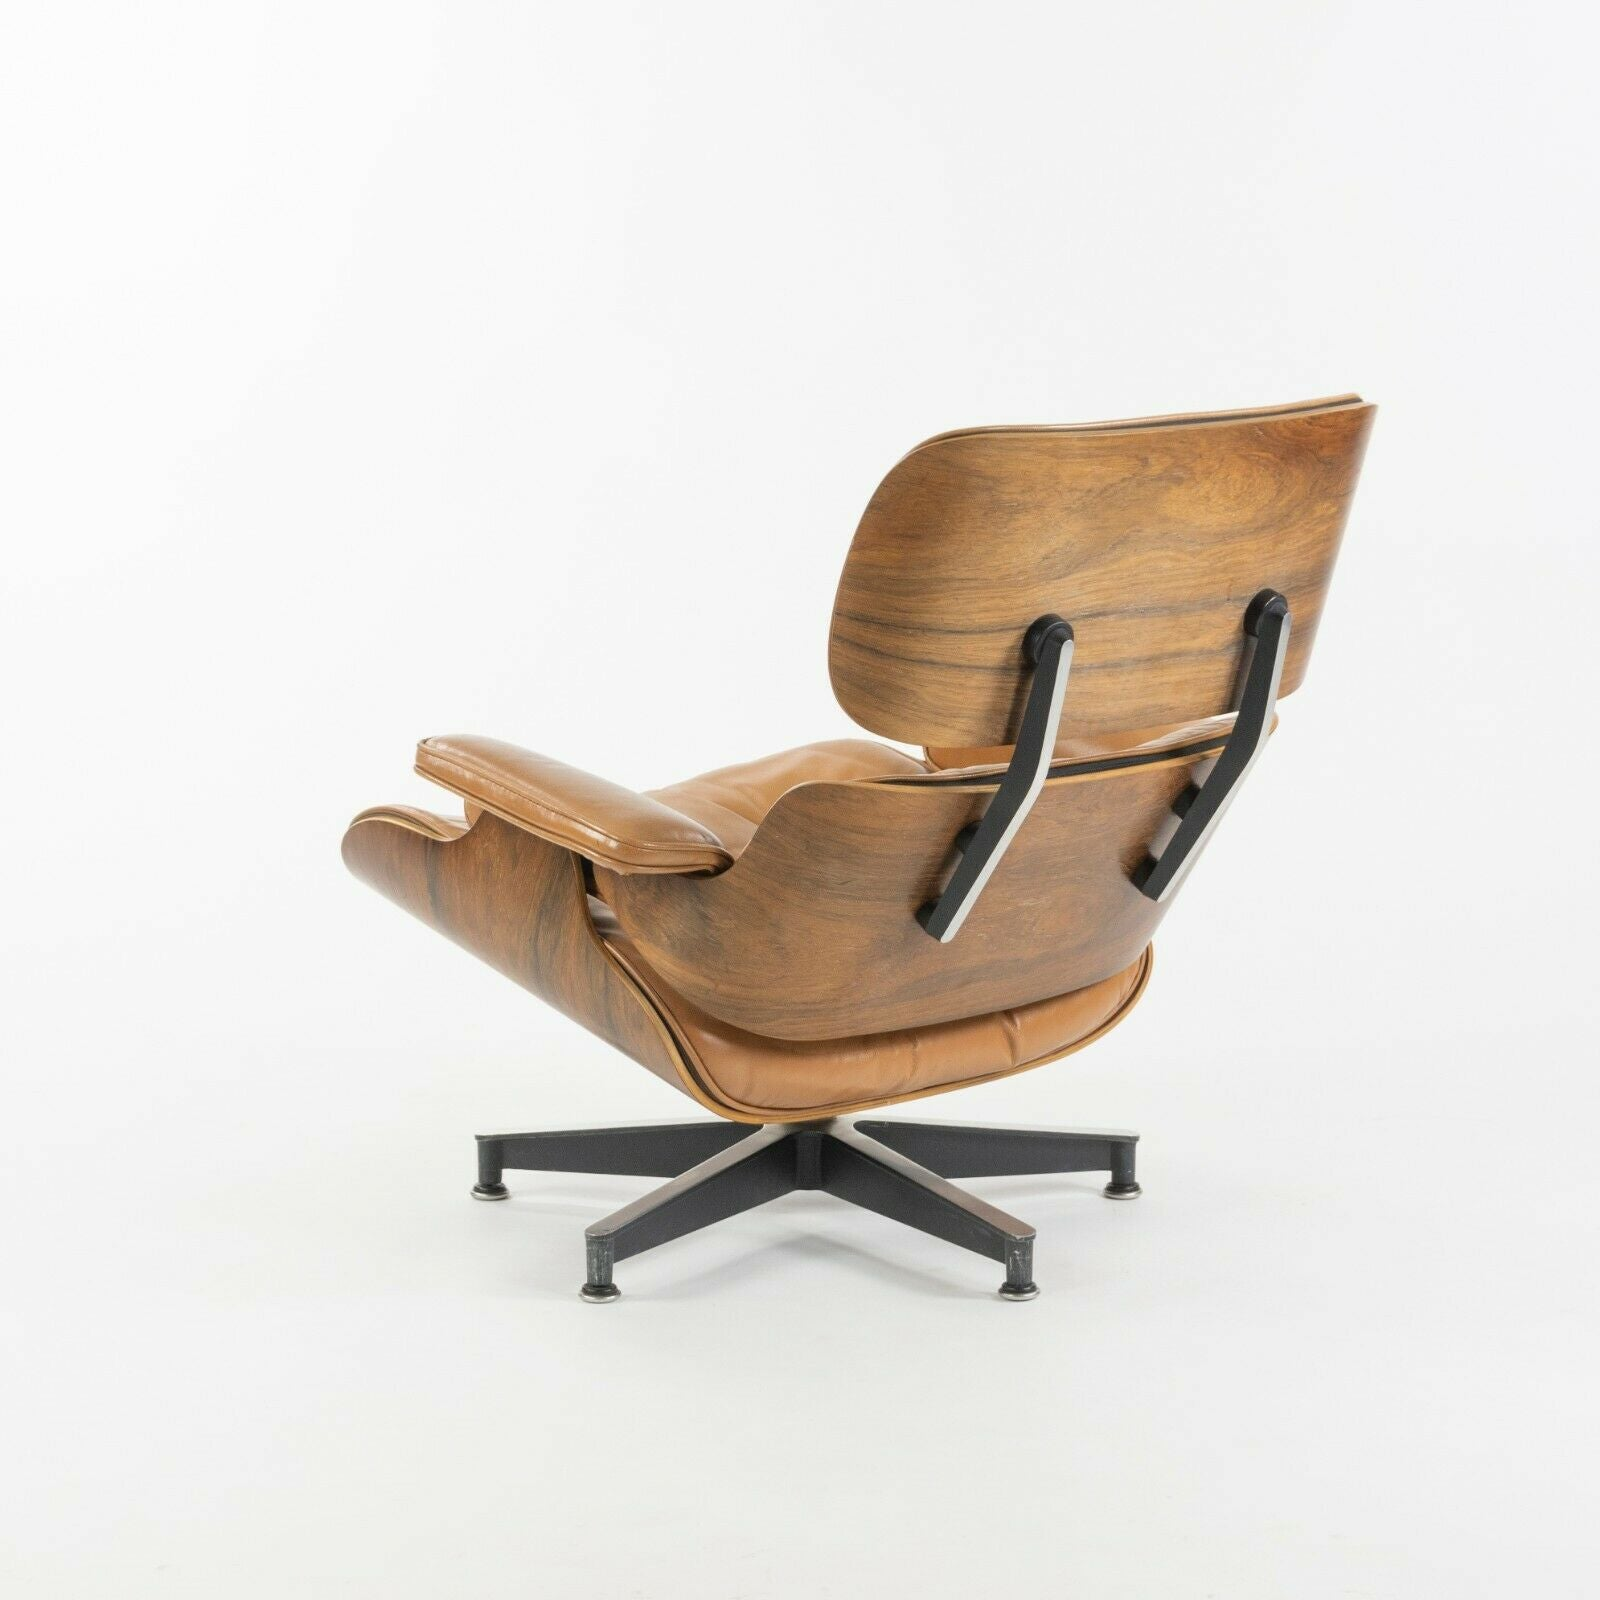 SOLD 1956 Herman Miller Eames Lounge Chair and Ottoman 670 671 with Boot Glides Tan